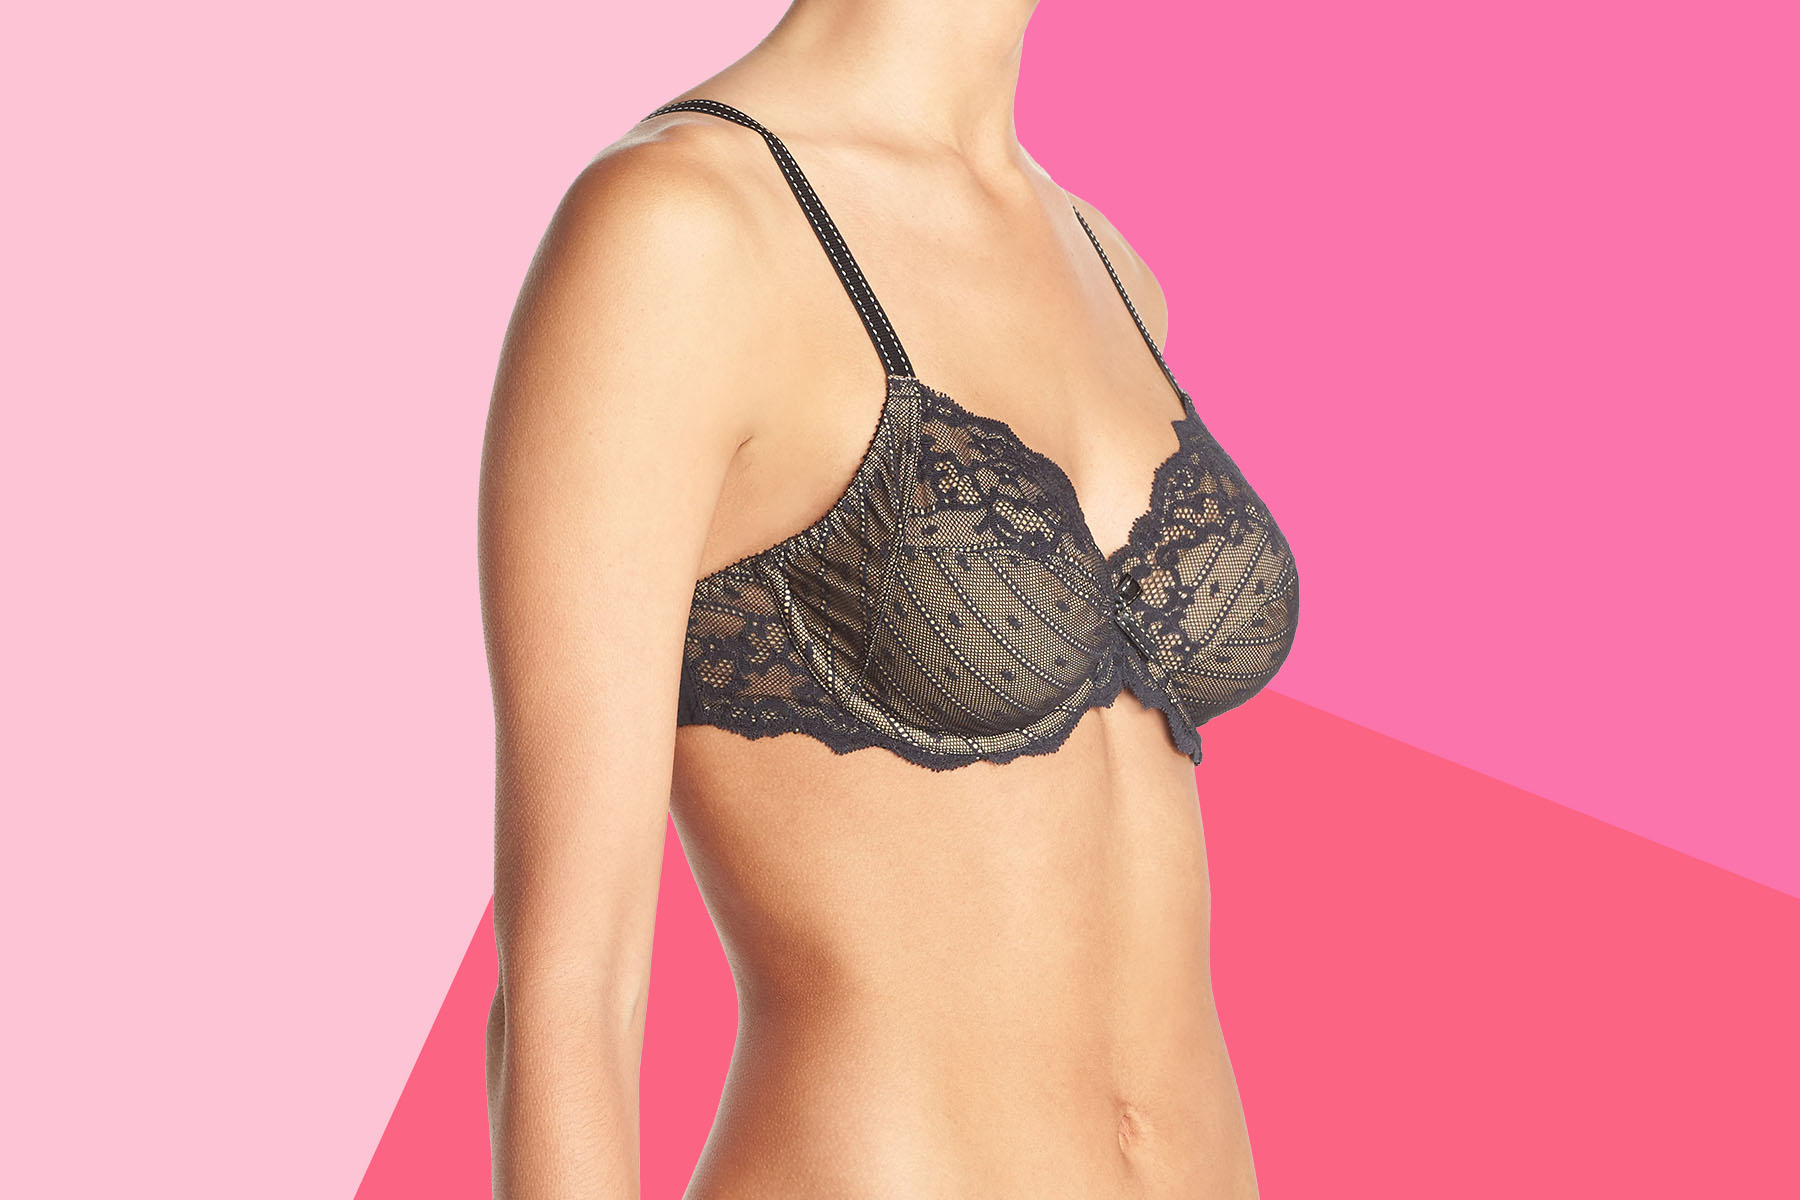 Nordstrom Shoppers Are Obsessed With This Super Comfortable Bra—And It's 30% Off Right Now